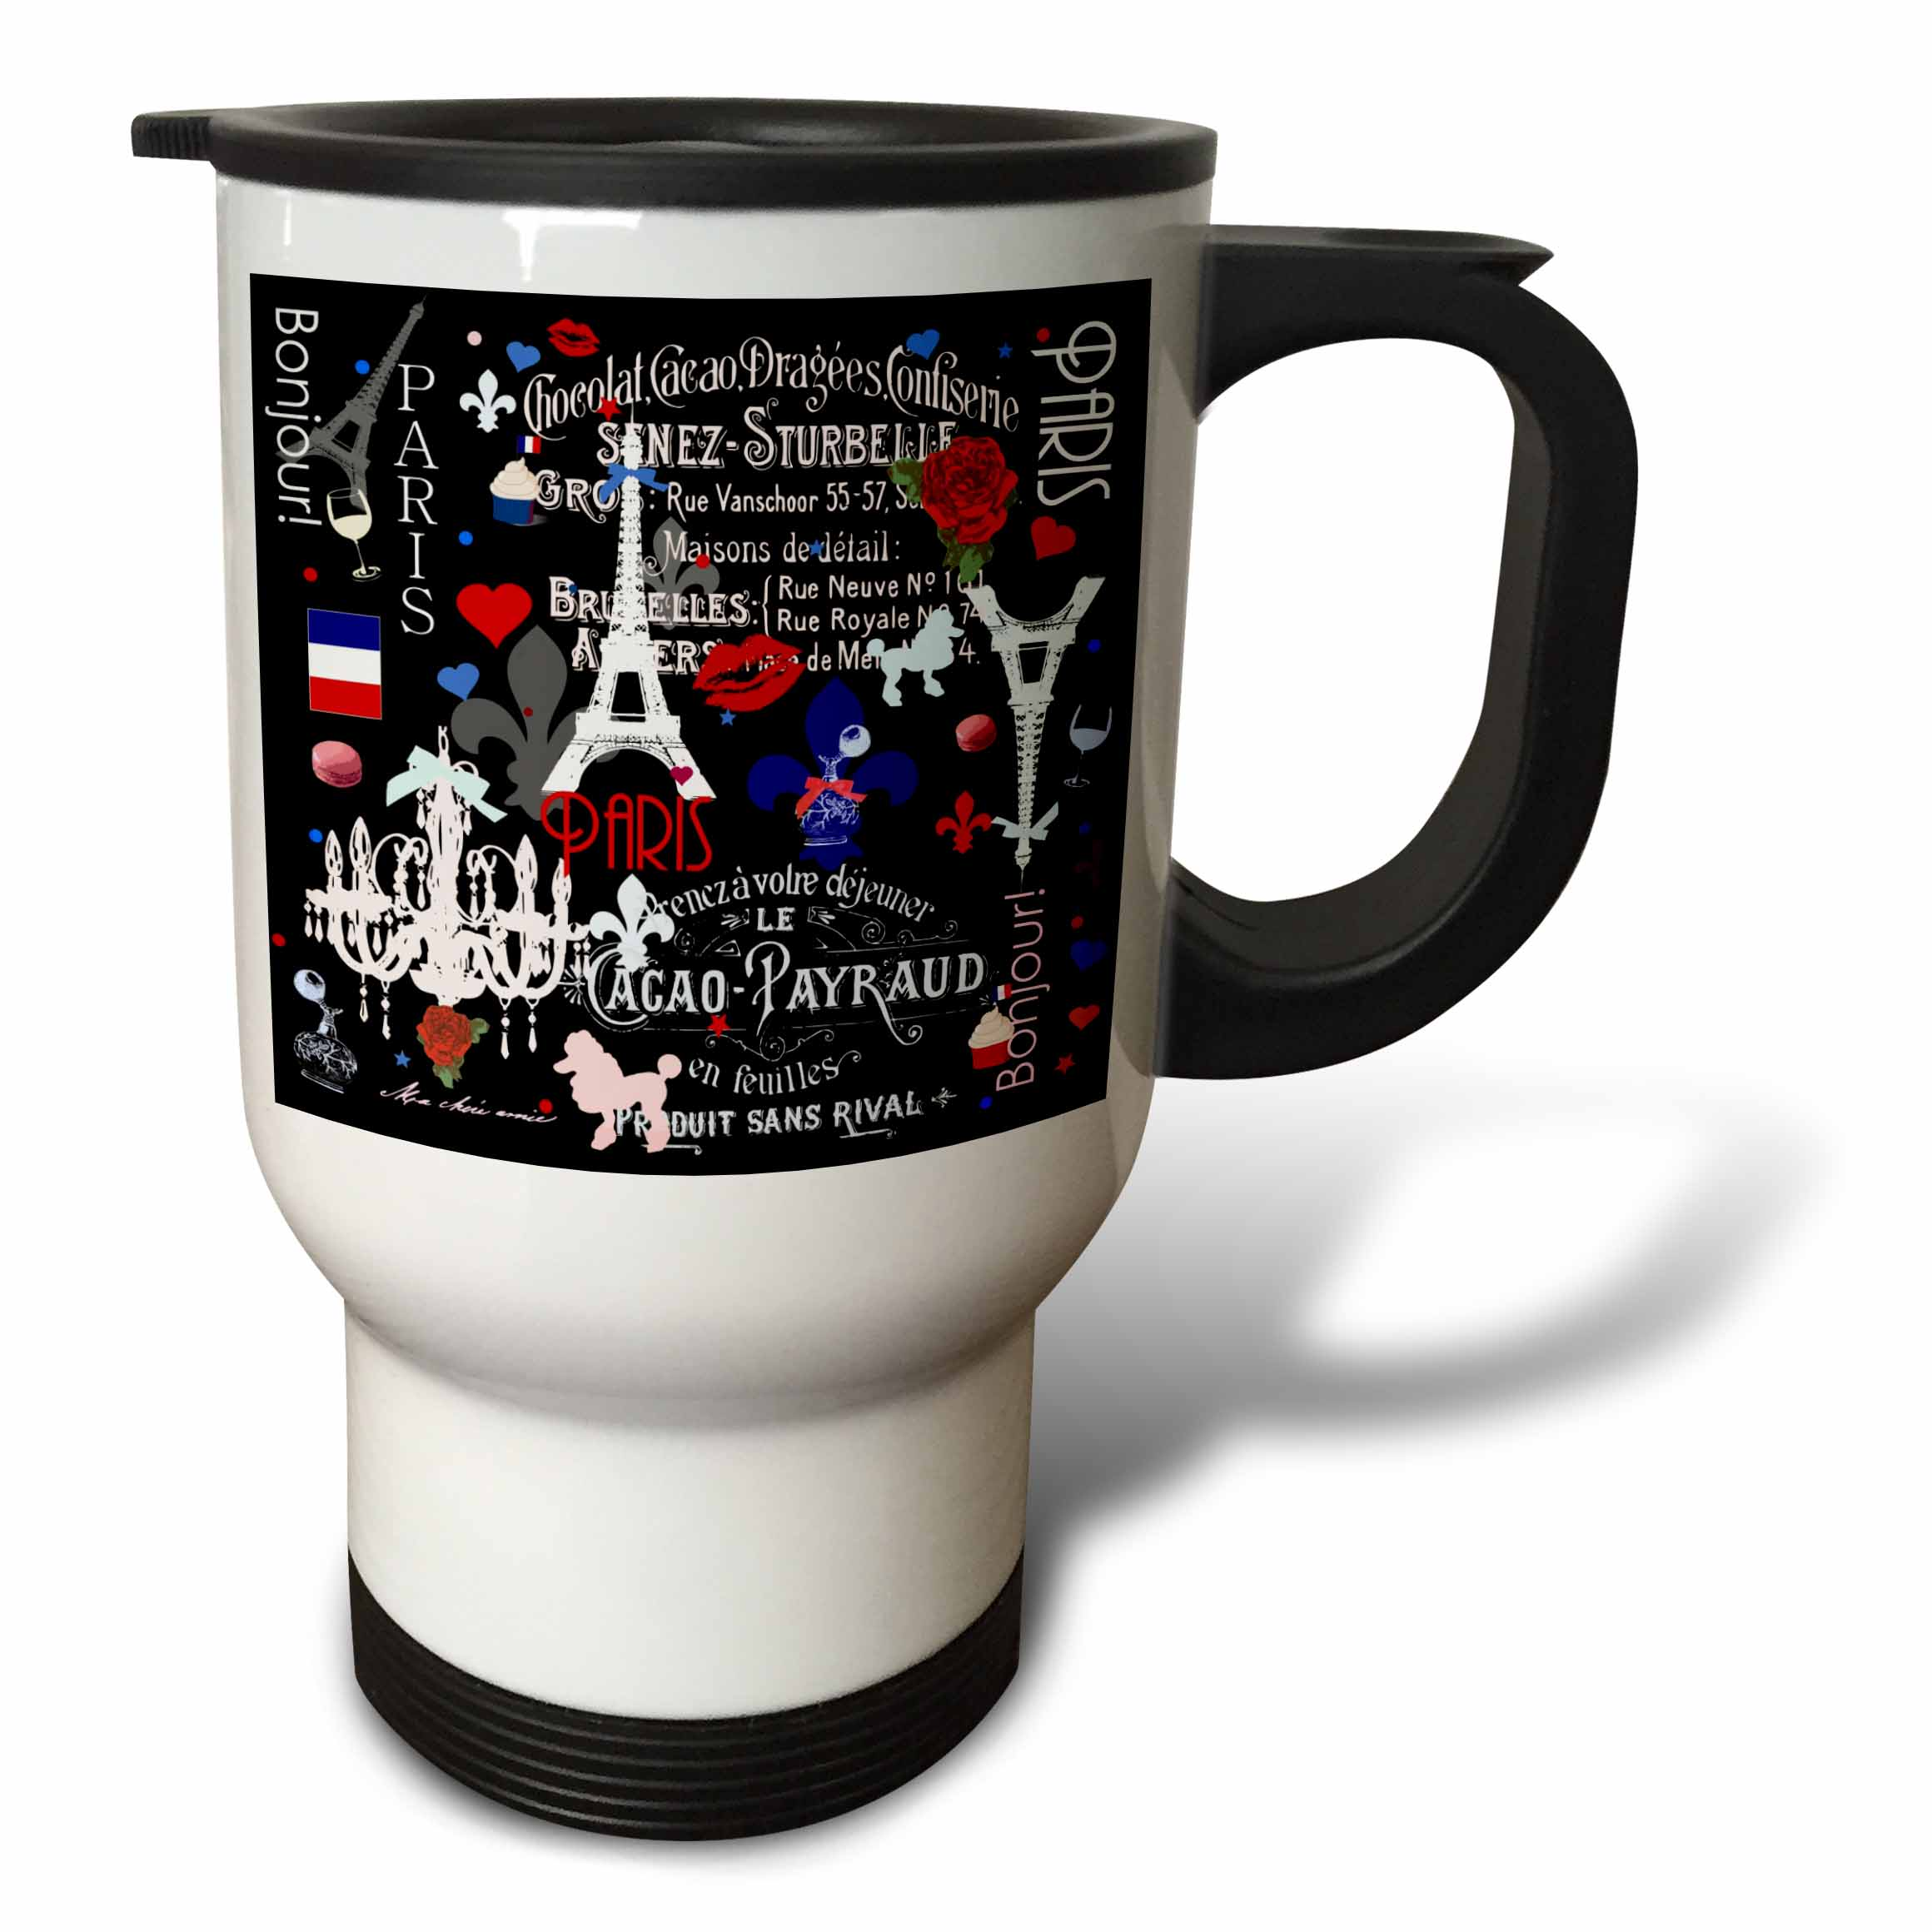 3dRose Girly Paris pattern - stylish black - romantic French - Classy France - trendy hip fashionable cute, Travel Mug, 14oz, Stainless Steel